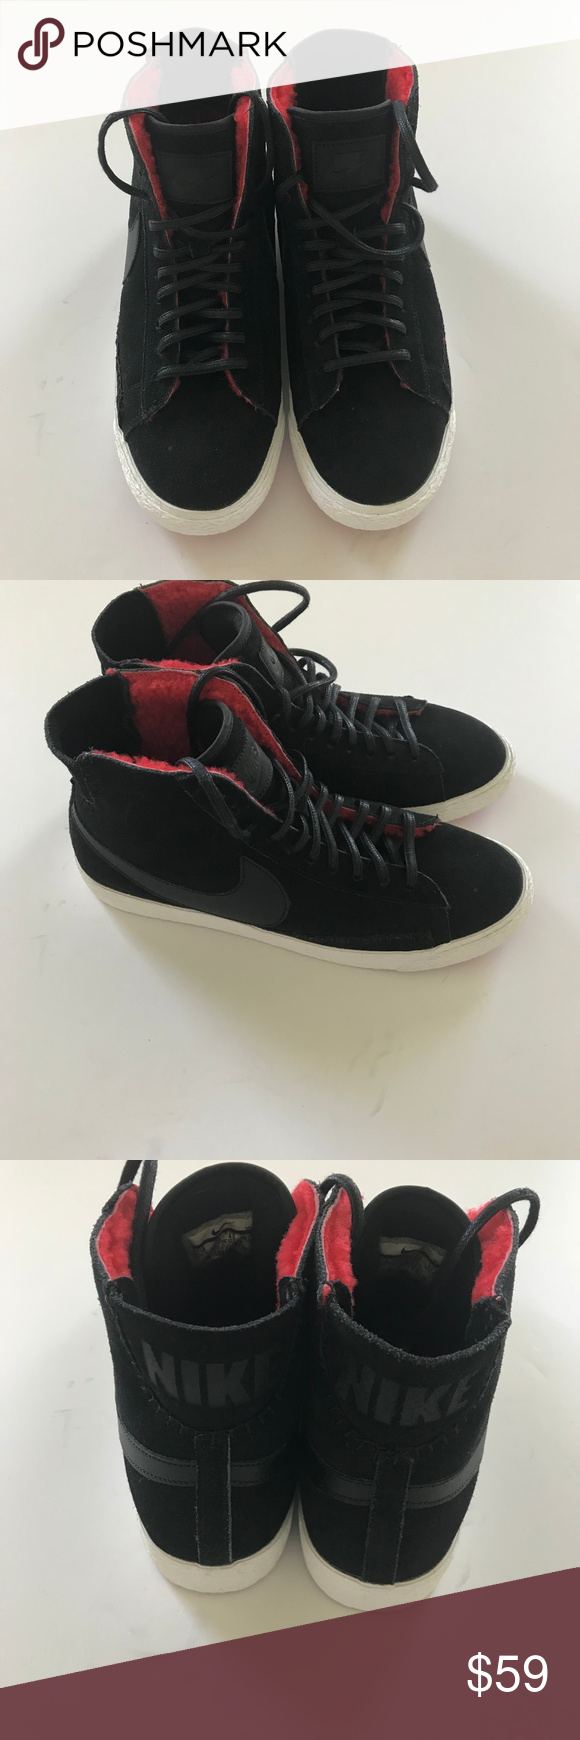 46897121f23 Nike Blazer Mid Premium Black Suede High Top new without box have been  handled in store